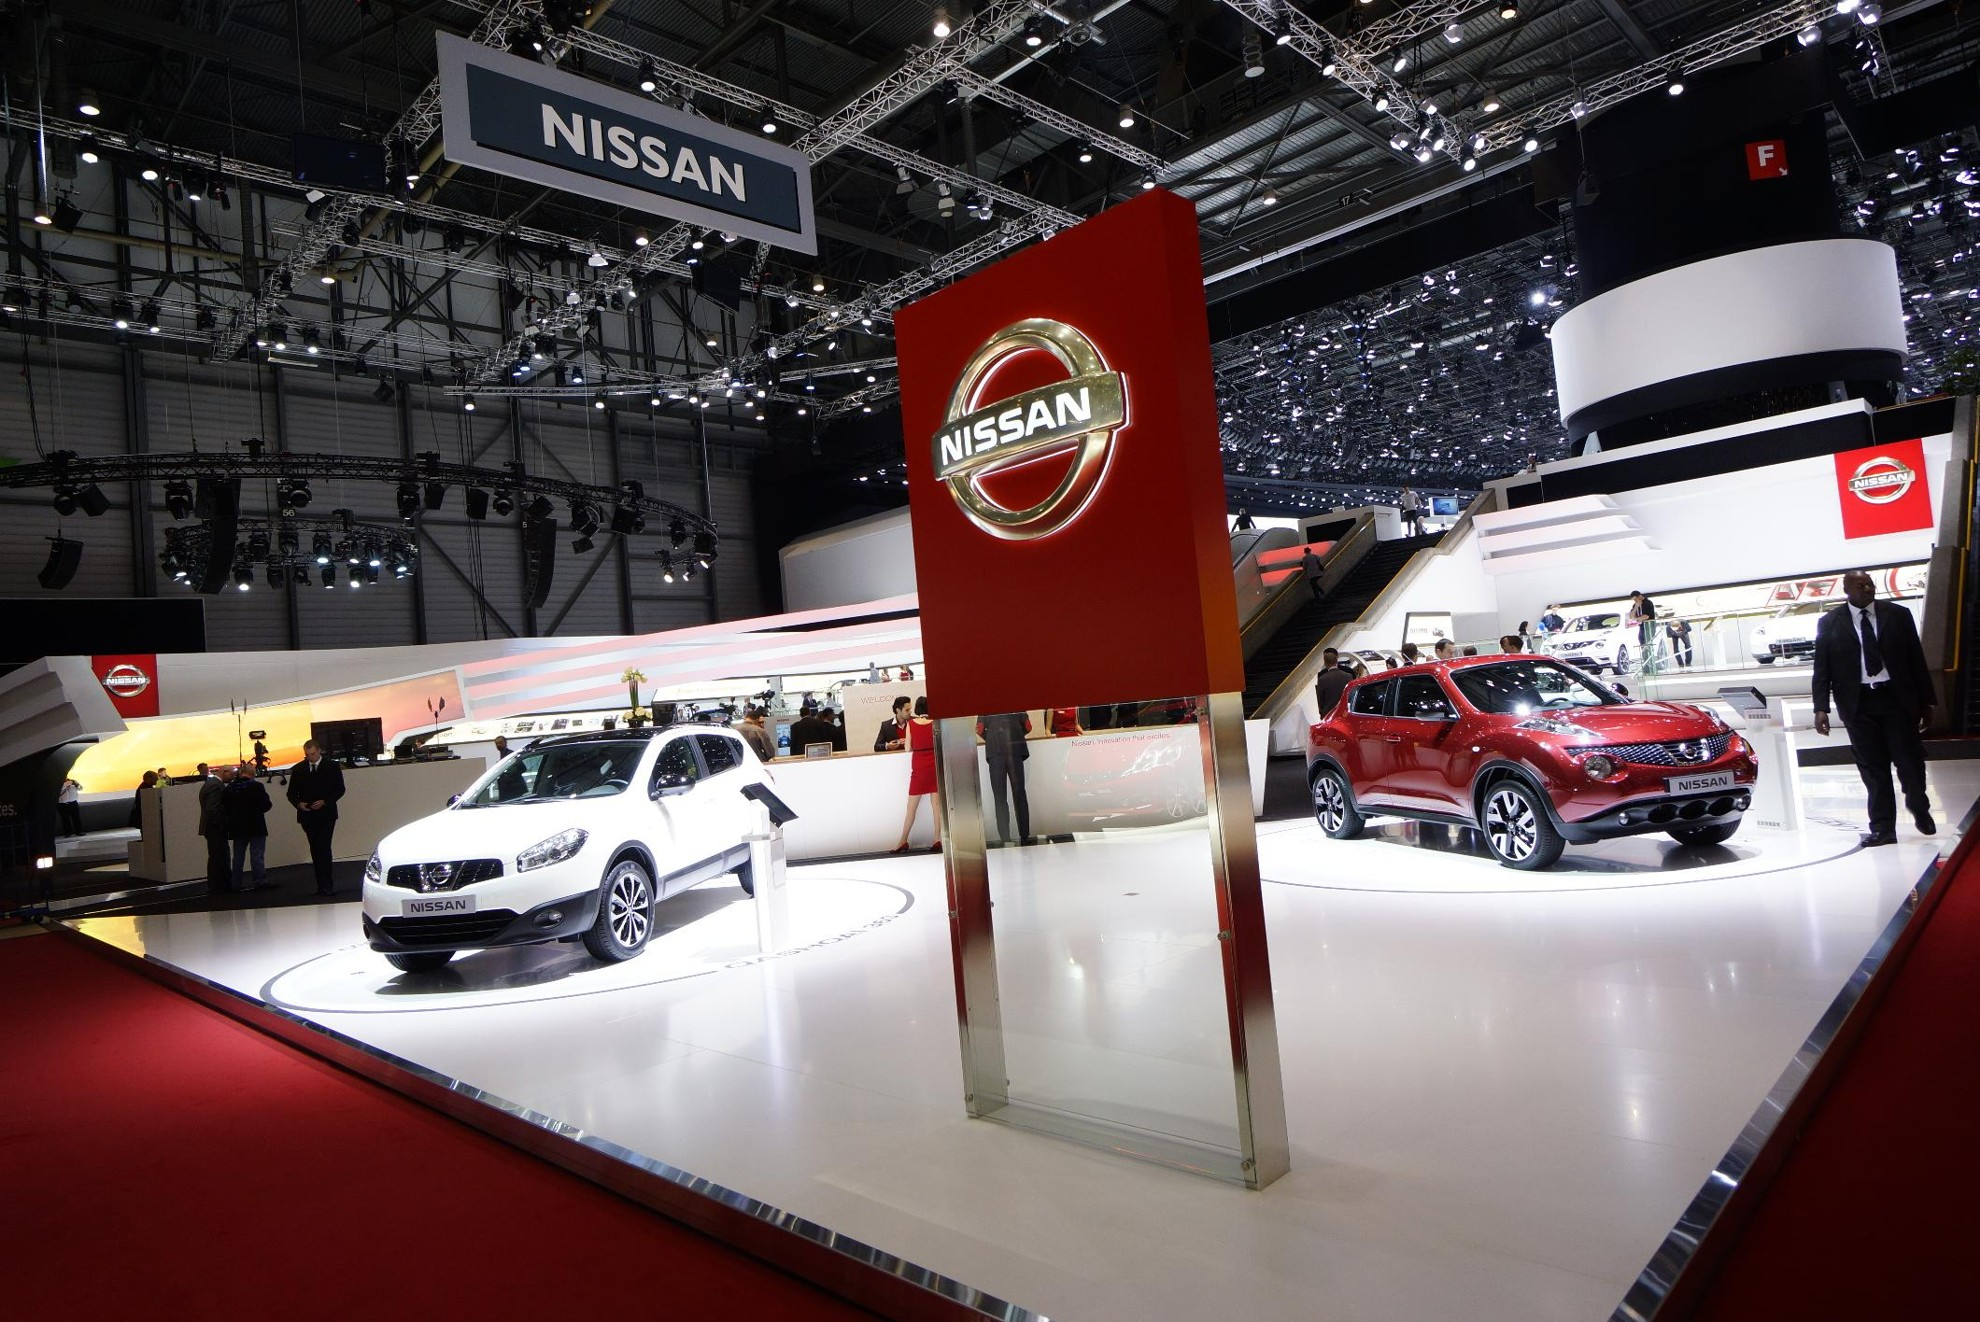 Images Nissan At The Geneva Motor Show 2013